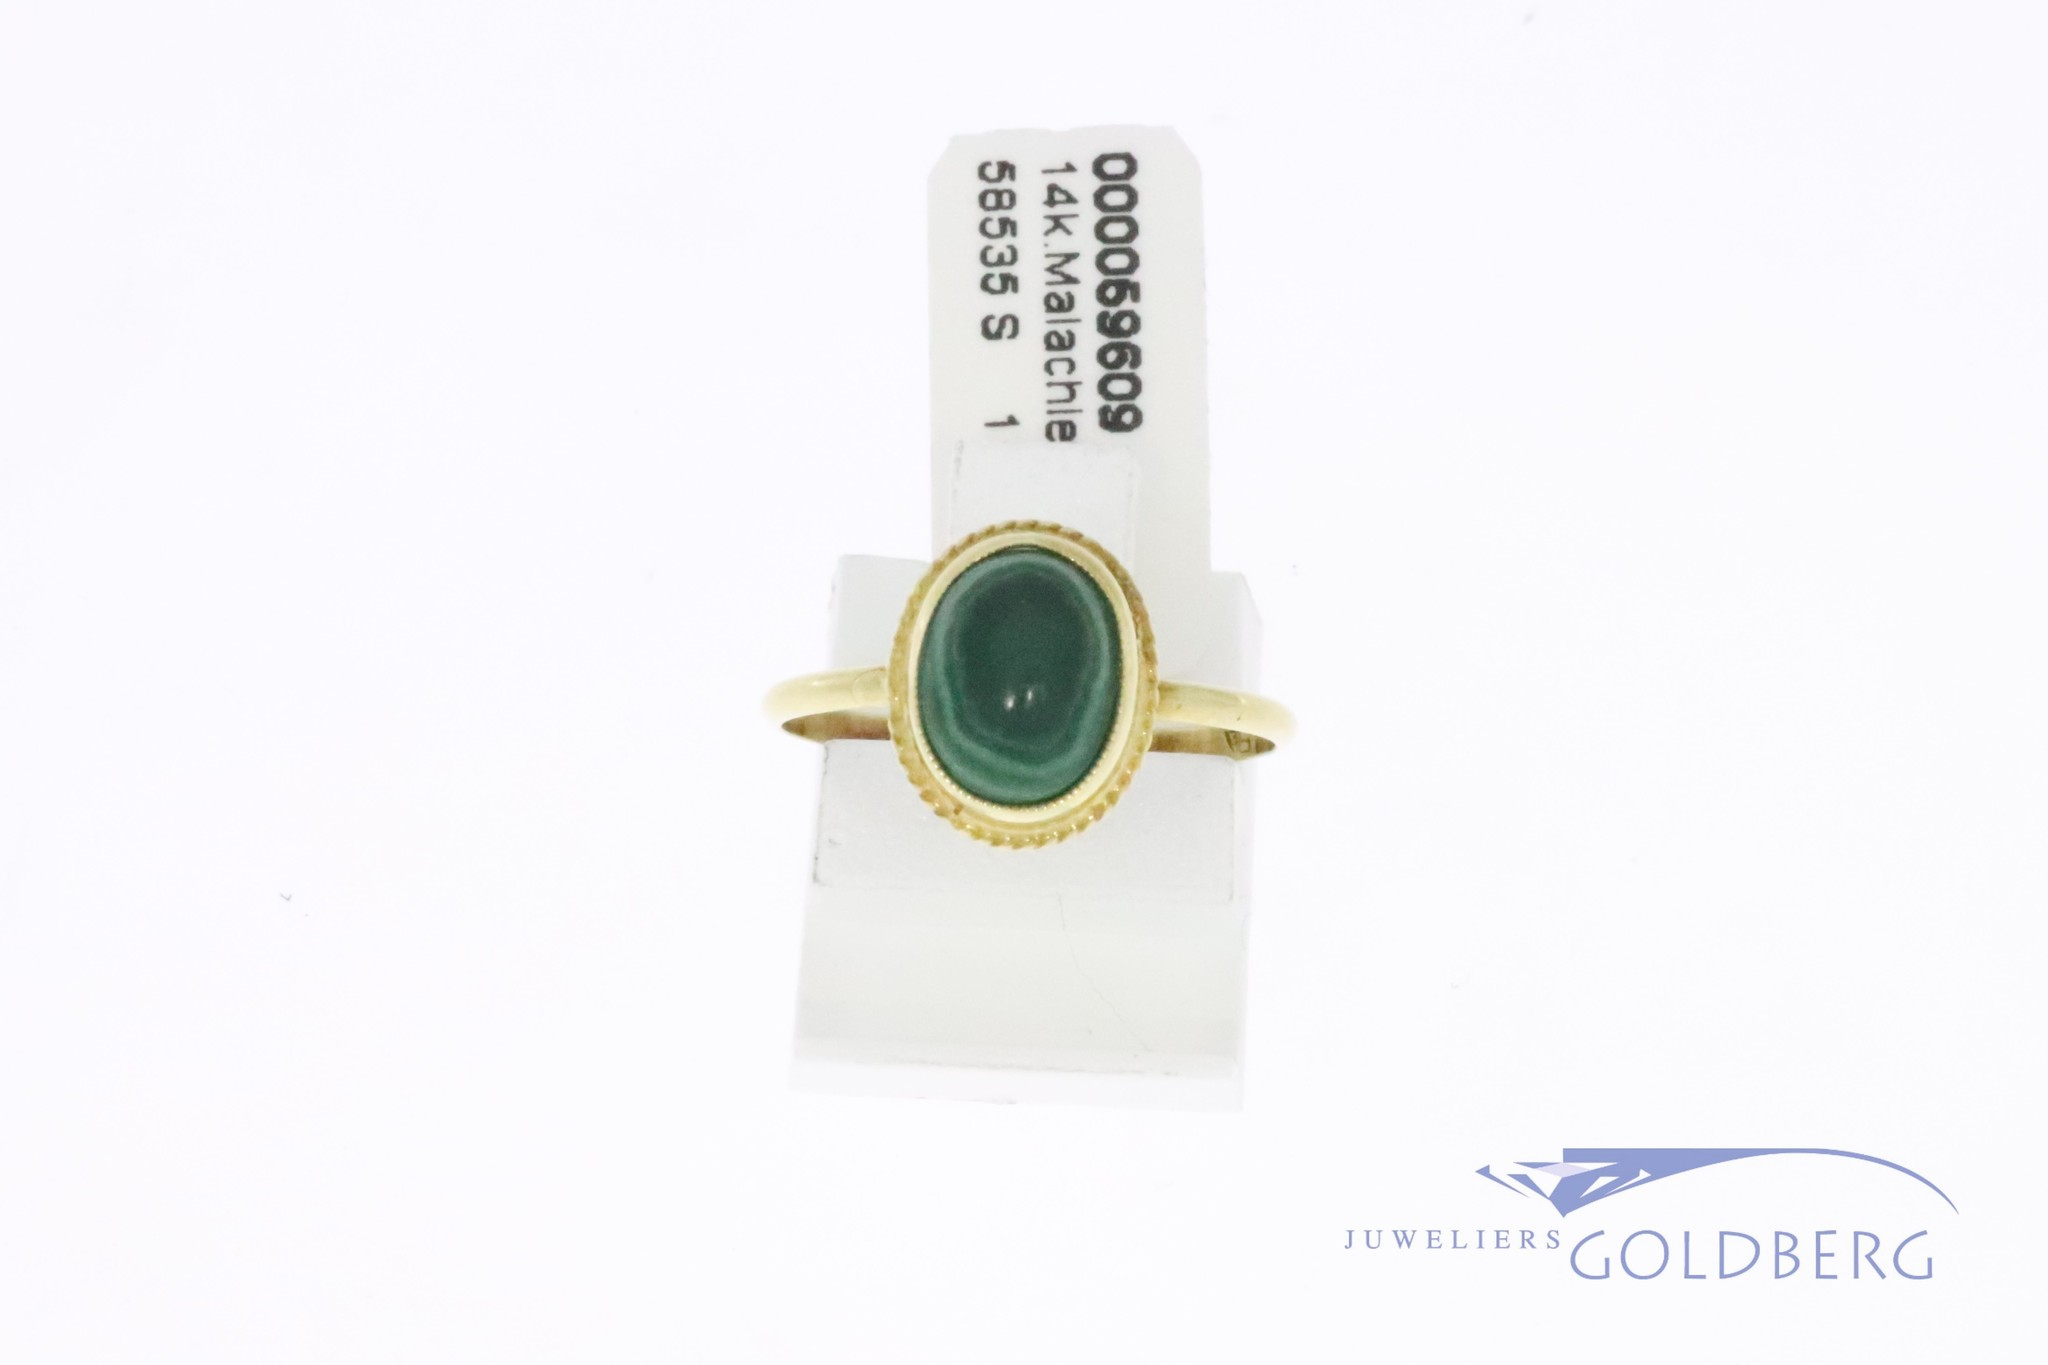 14k gold small vintage ring with malachite